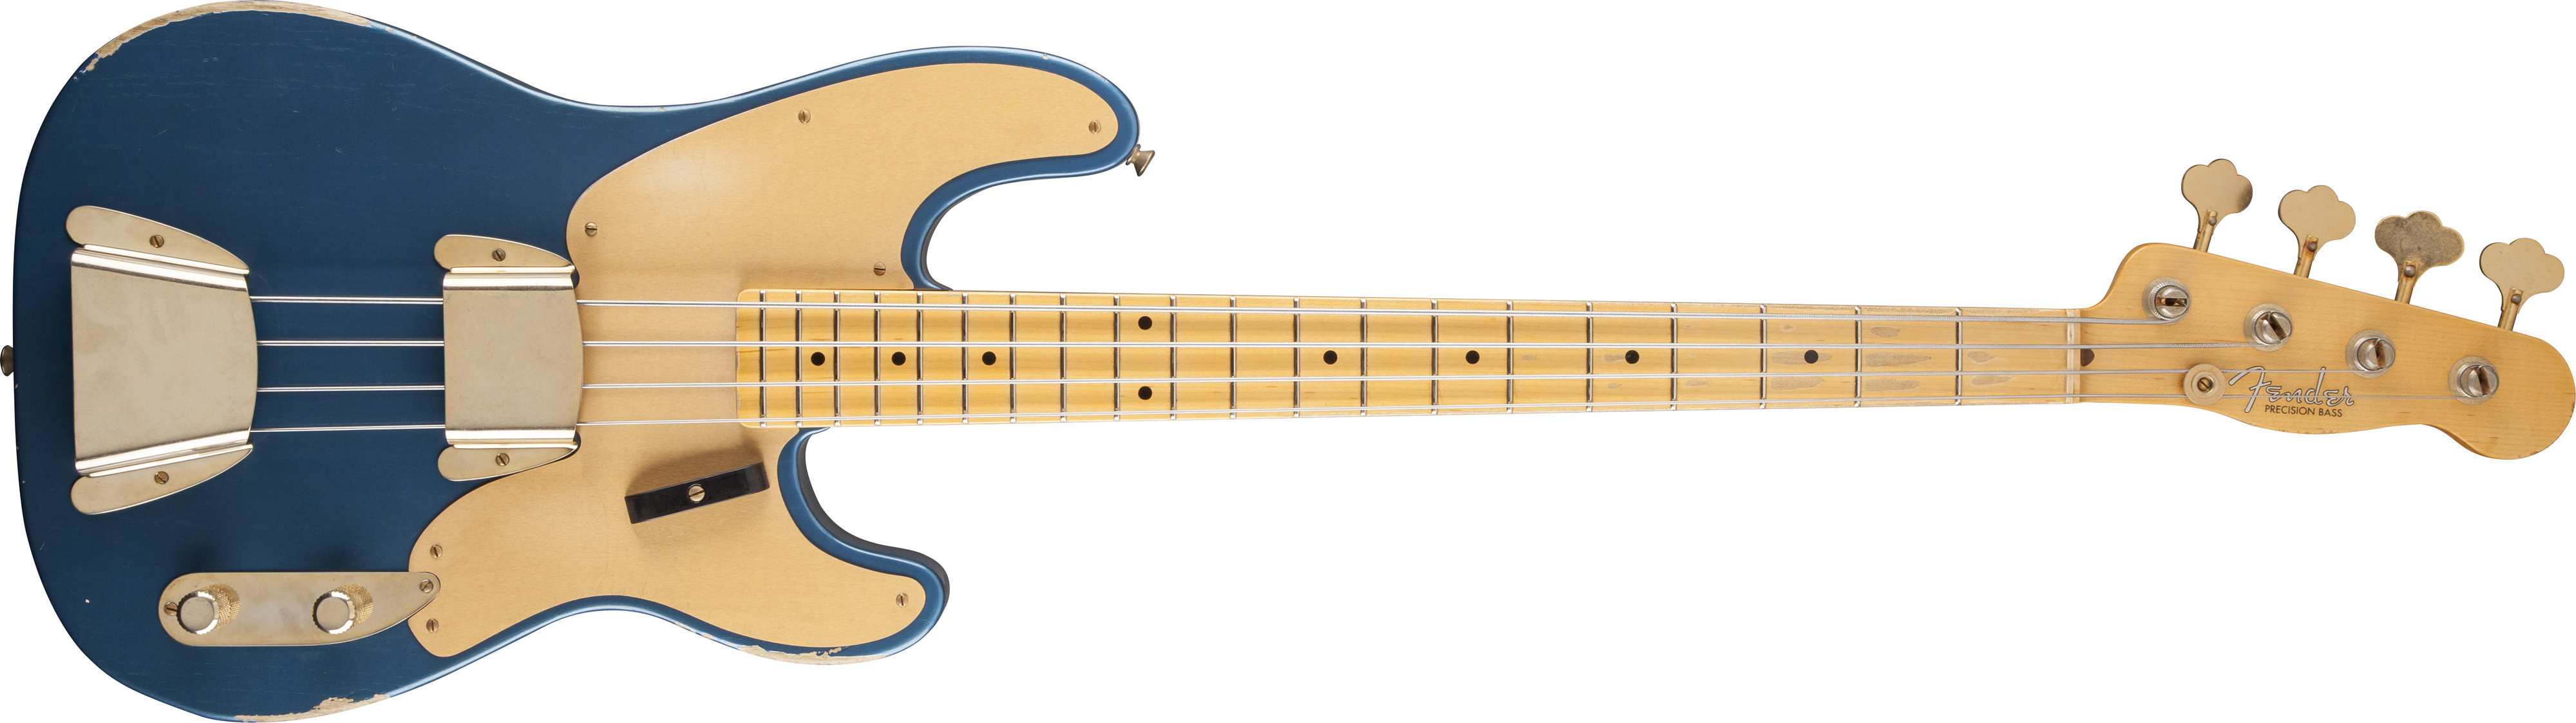 Fender Twisted Tele Wiring Quick Start Guide Of Diagram Telecaster Bass Custom Shop Unveils Collection Models For 2013 Fat Sound Strat Pickup